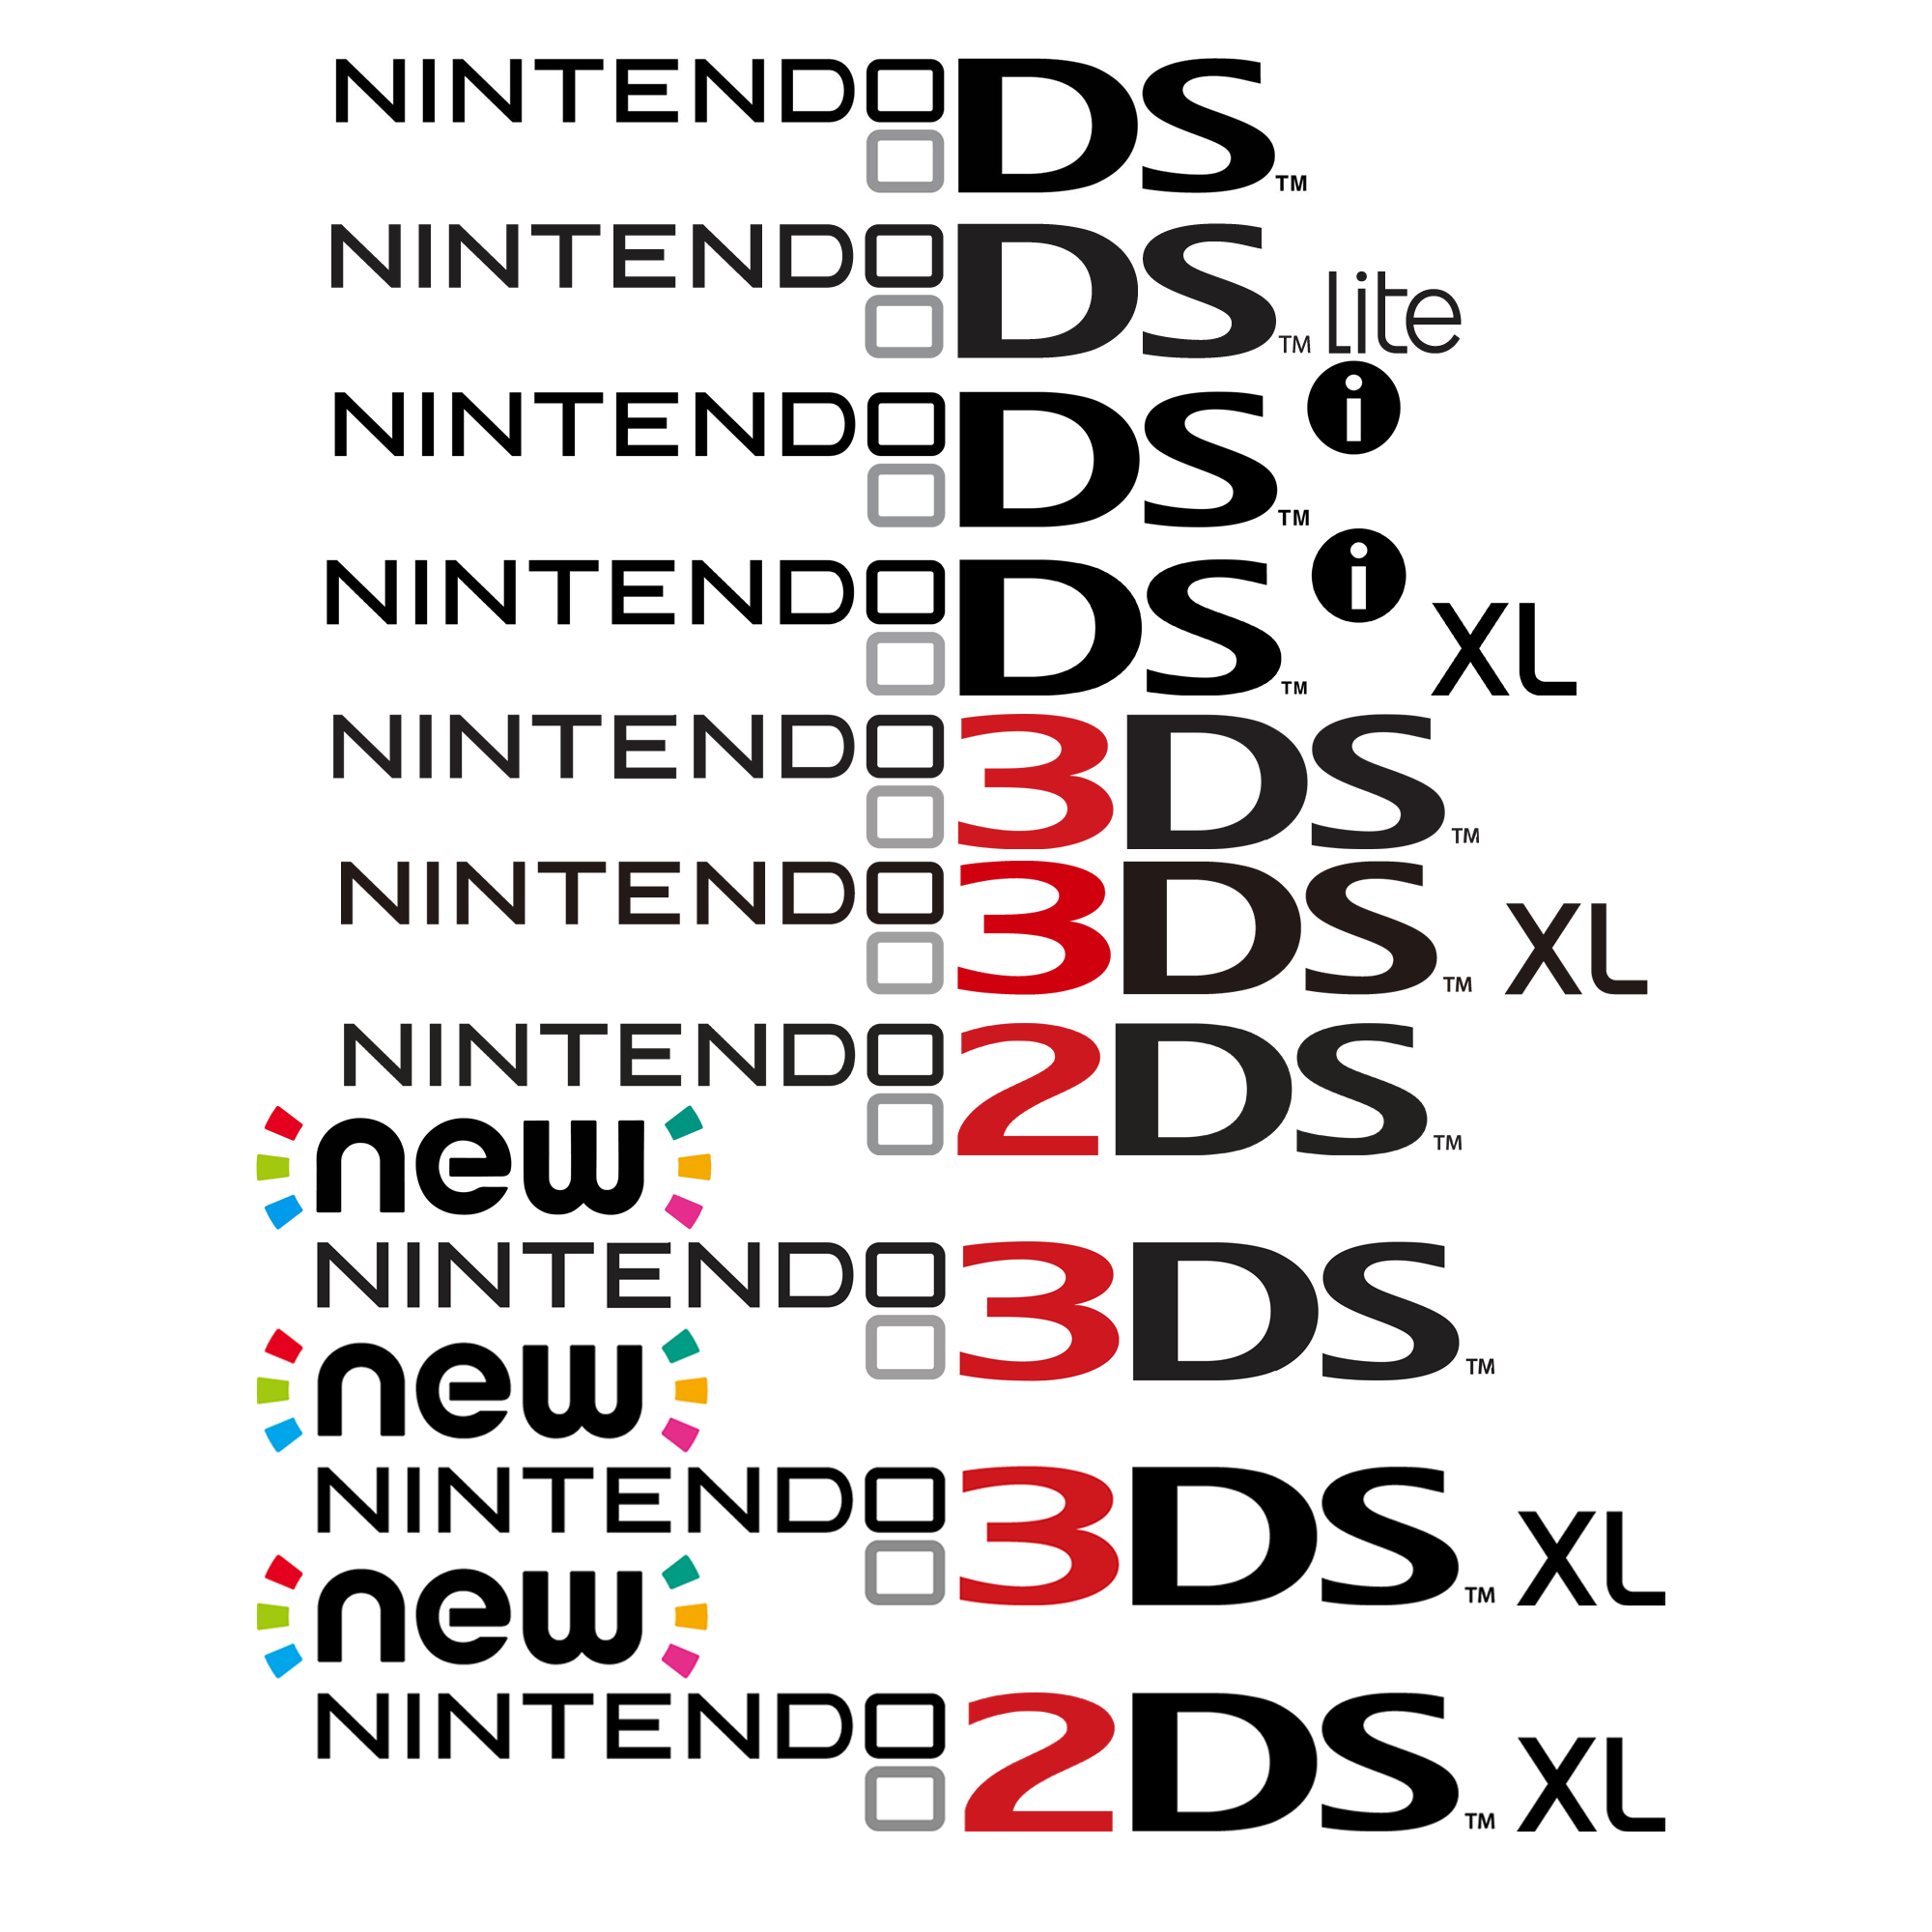 With the New 2DS XL... Nintendo is still not the best at